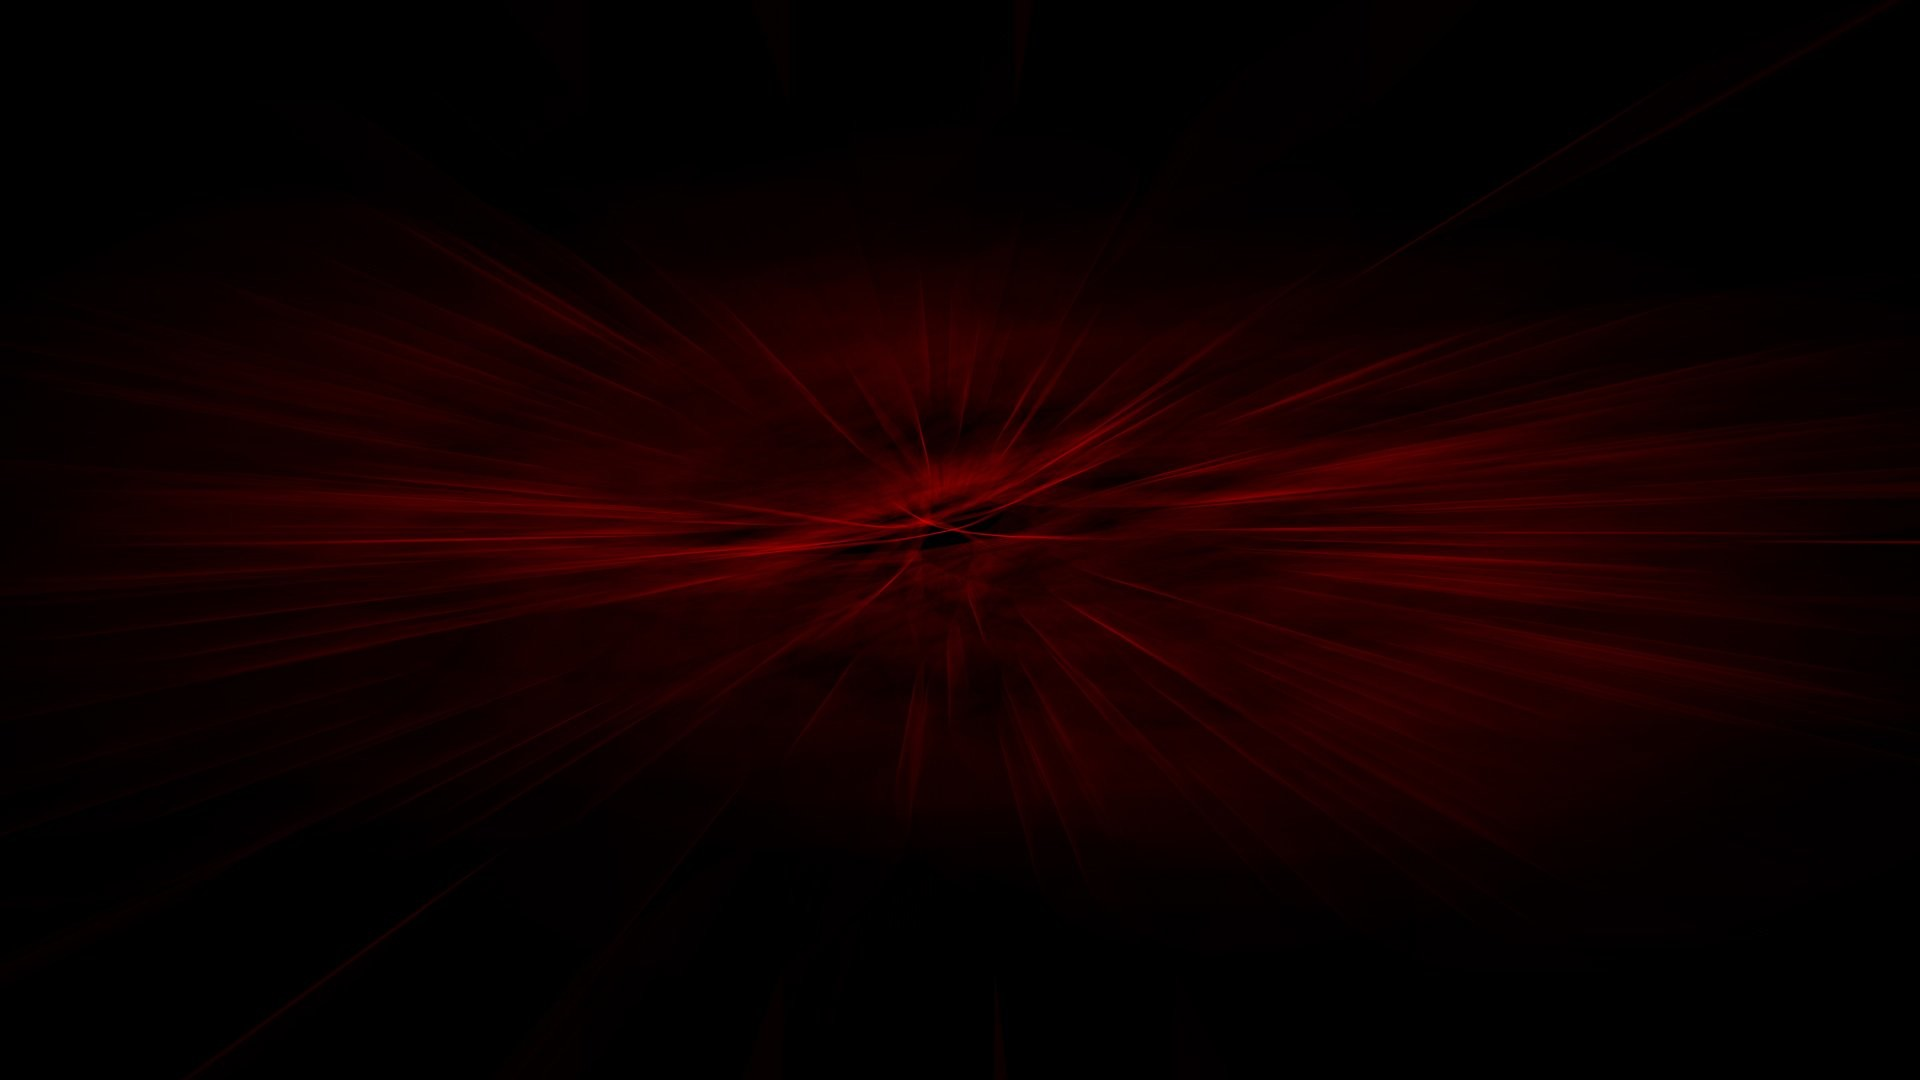 HD Wallpaper   Background ID:75619. Abstract Red